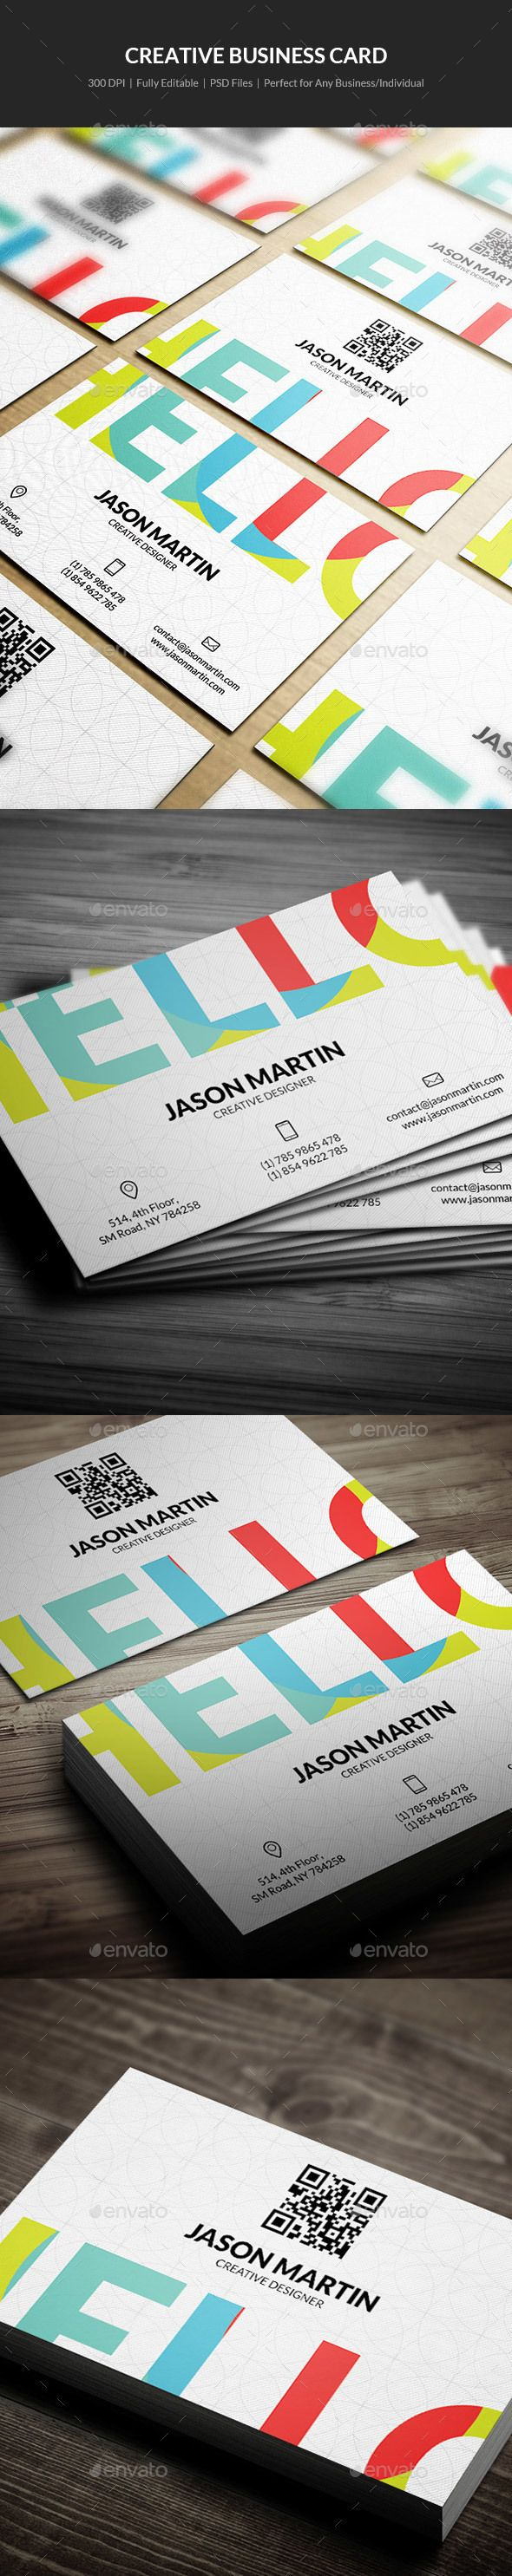 Creative Business Card Template PSD #design Download: http://graphicriver.net/item/creative-business-card-02/13897806?ref=ksioks